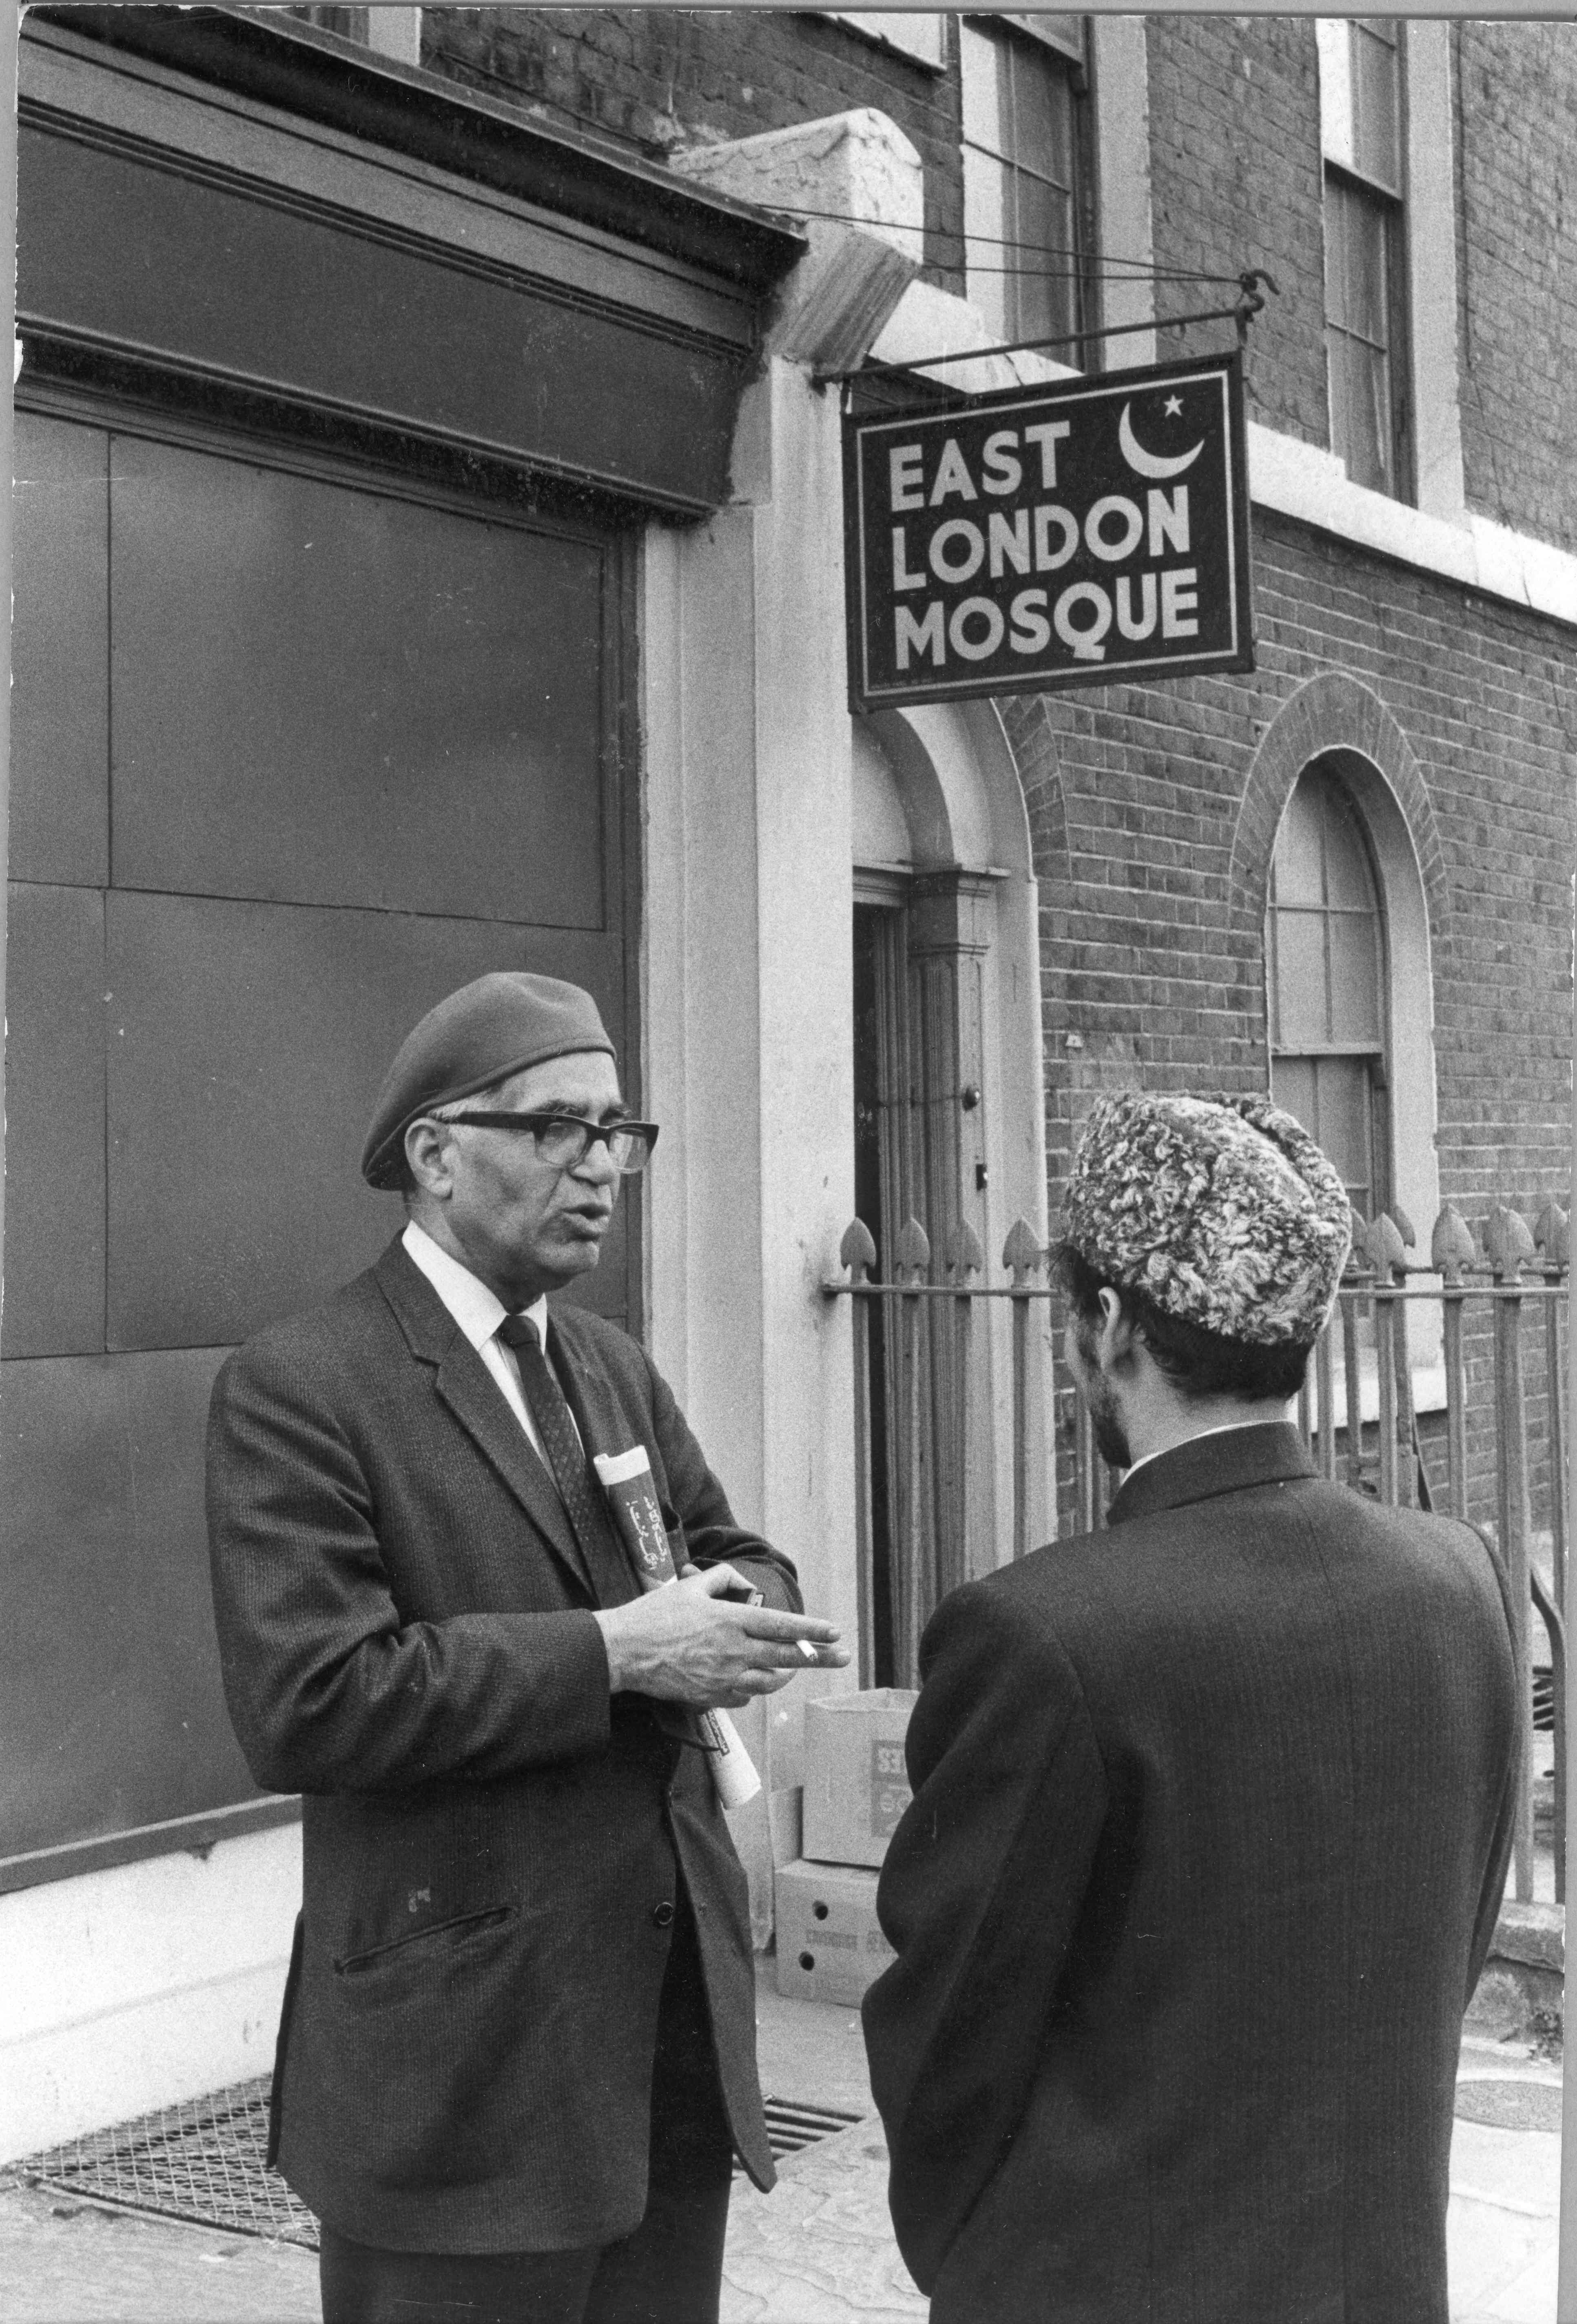 East London: The East London Mosque / Our Migration Story